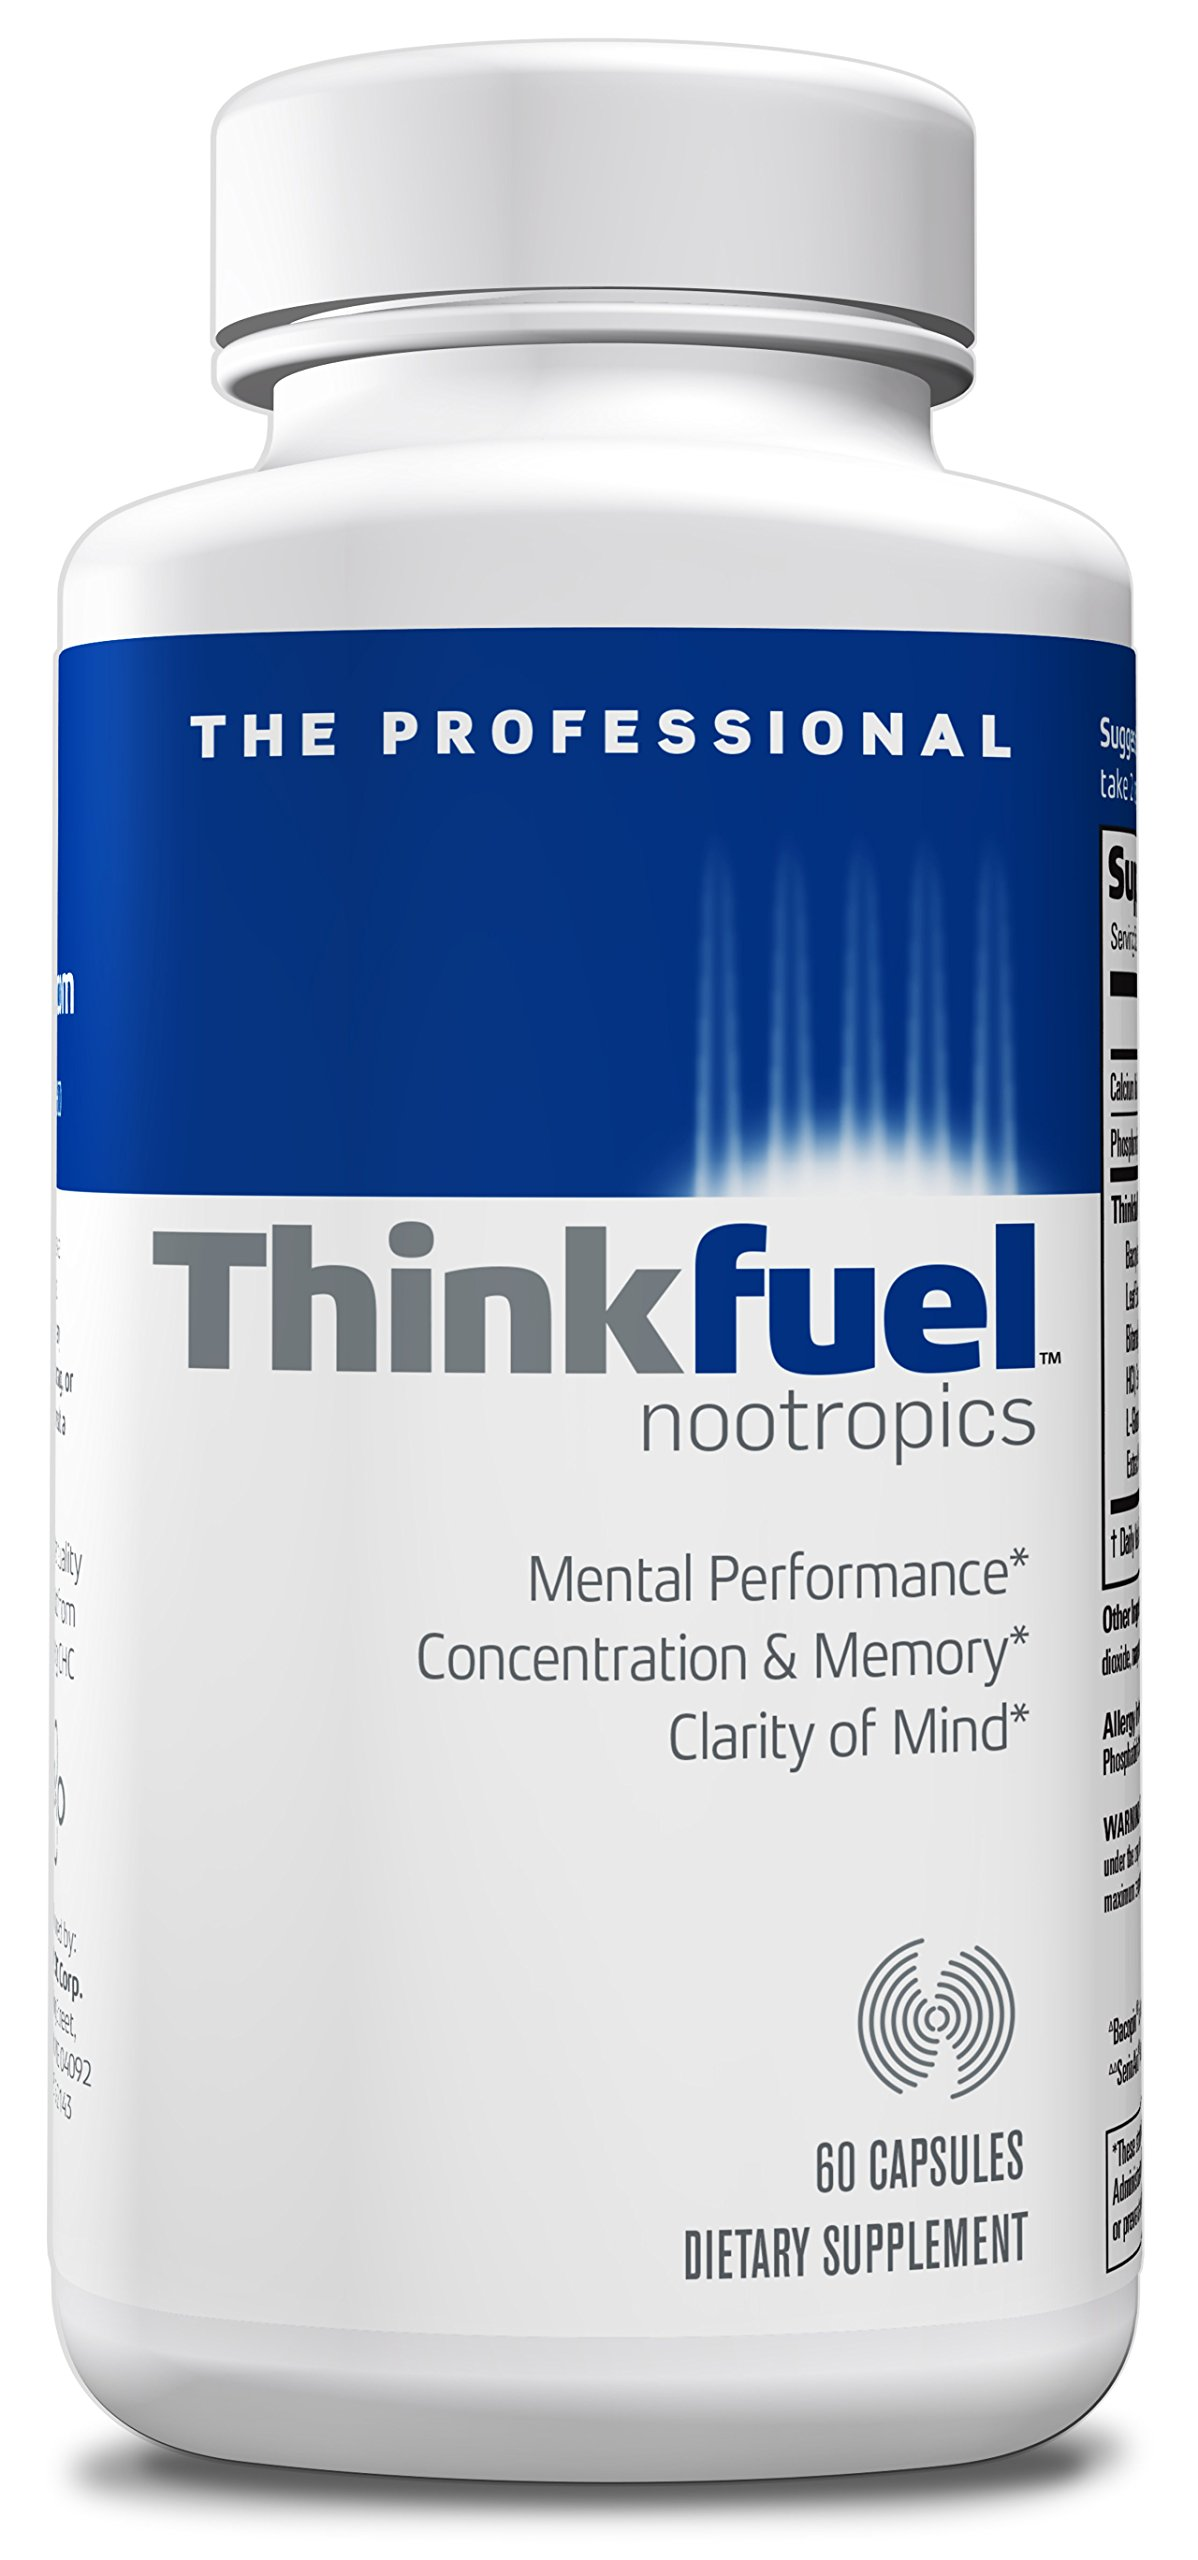 Thinkfuel For Professionals | Nootropic - Dopamine Stack to Boost Mental Clarity, Concentration & Focus w/ Bacopa, Ginkgo Biloba, L- Glutamine, Green Tea Leaf and DMAE. (60 Capsules)